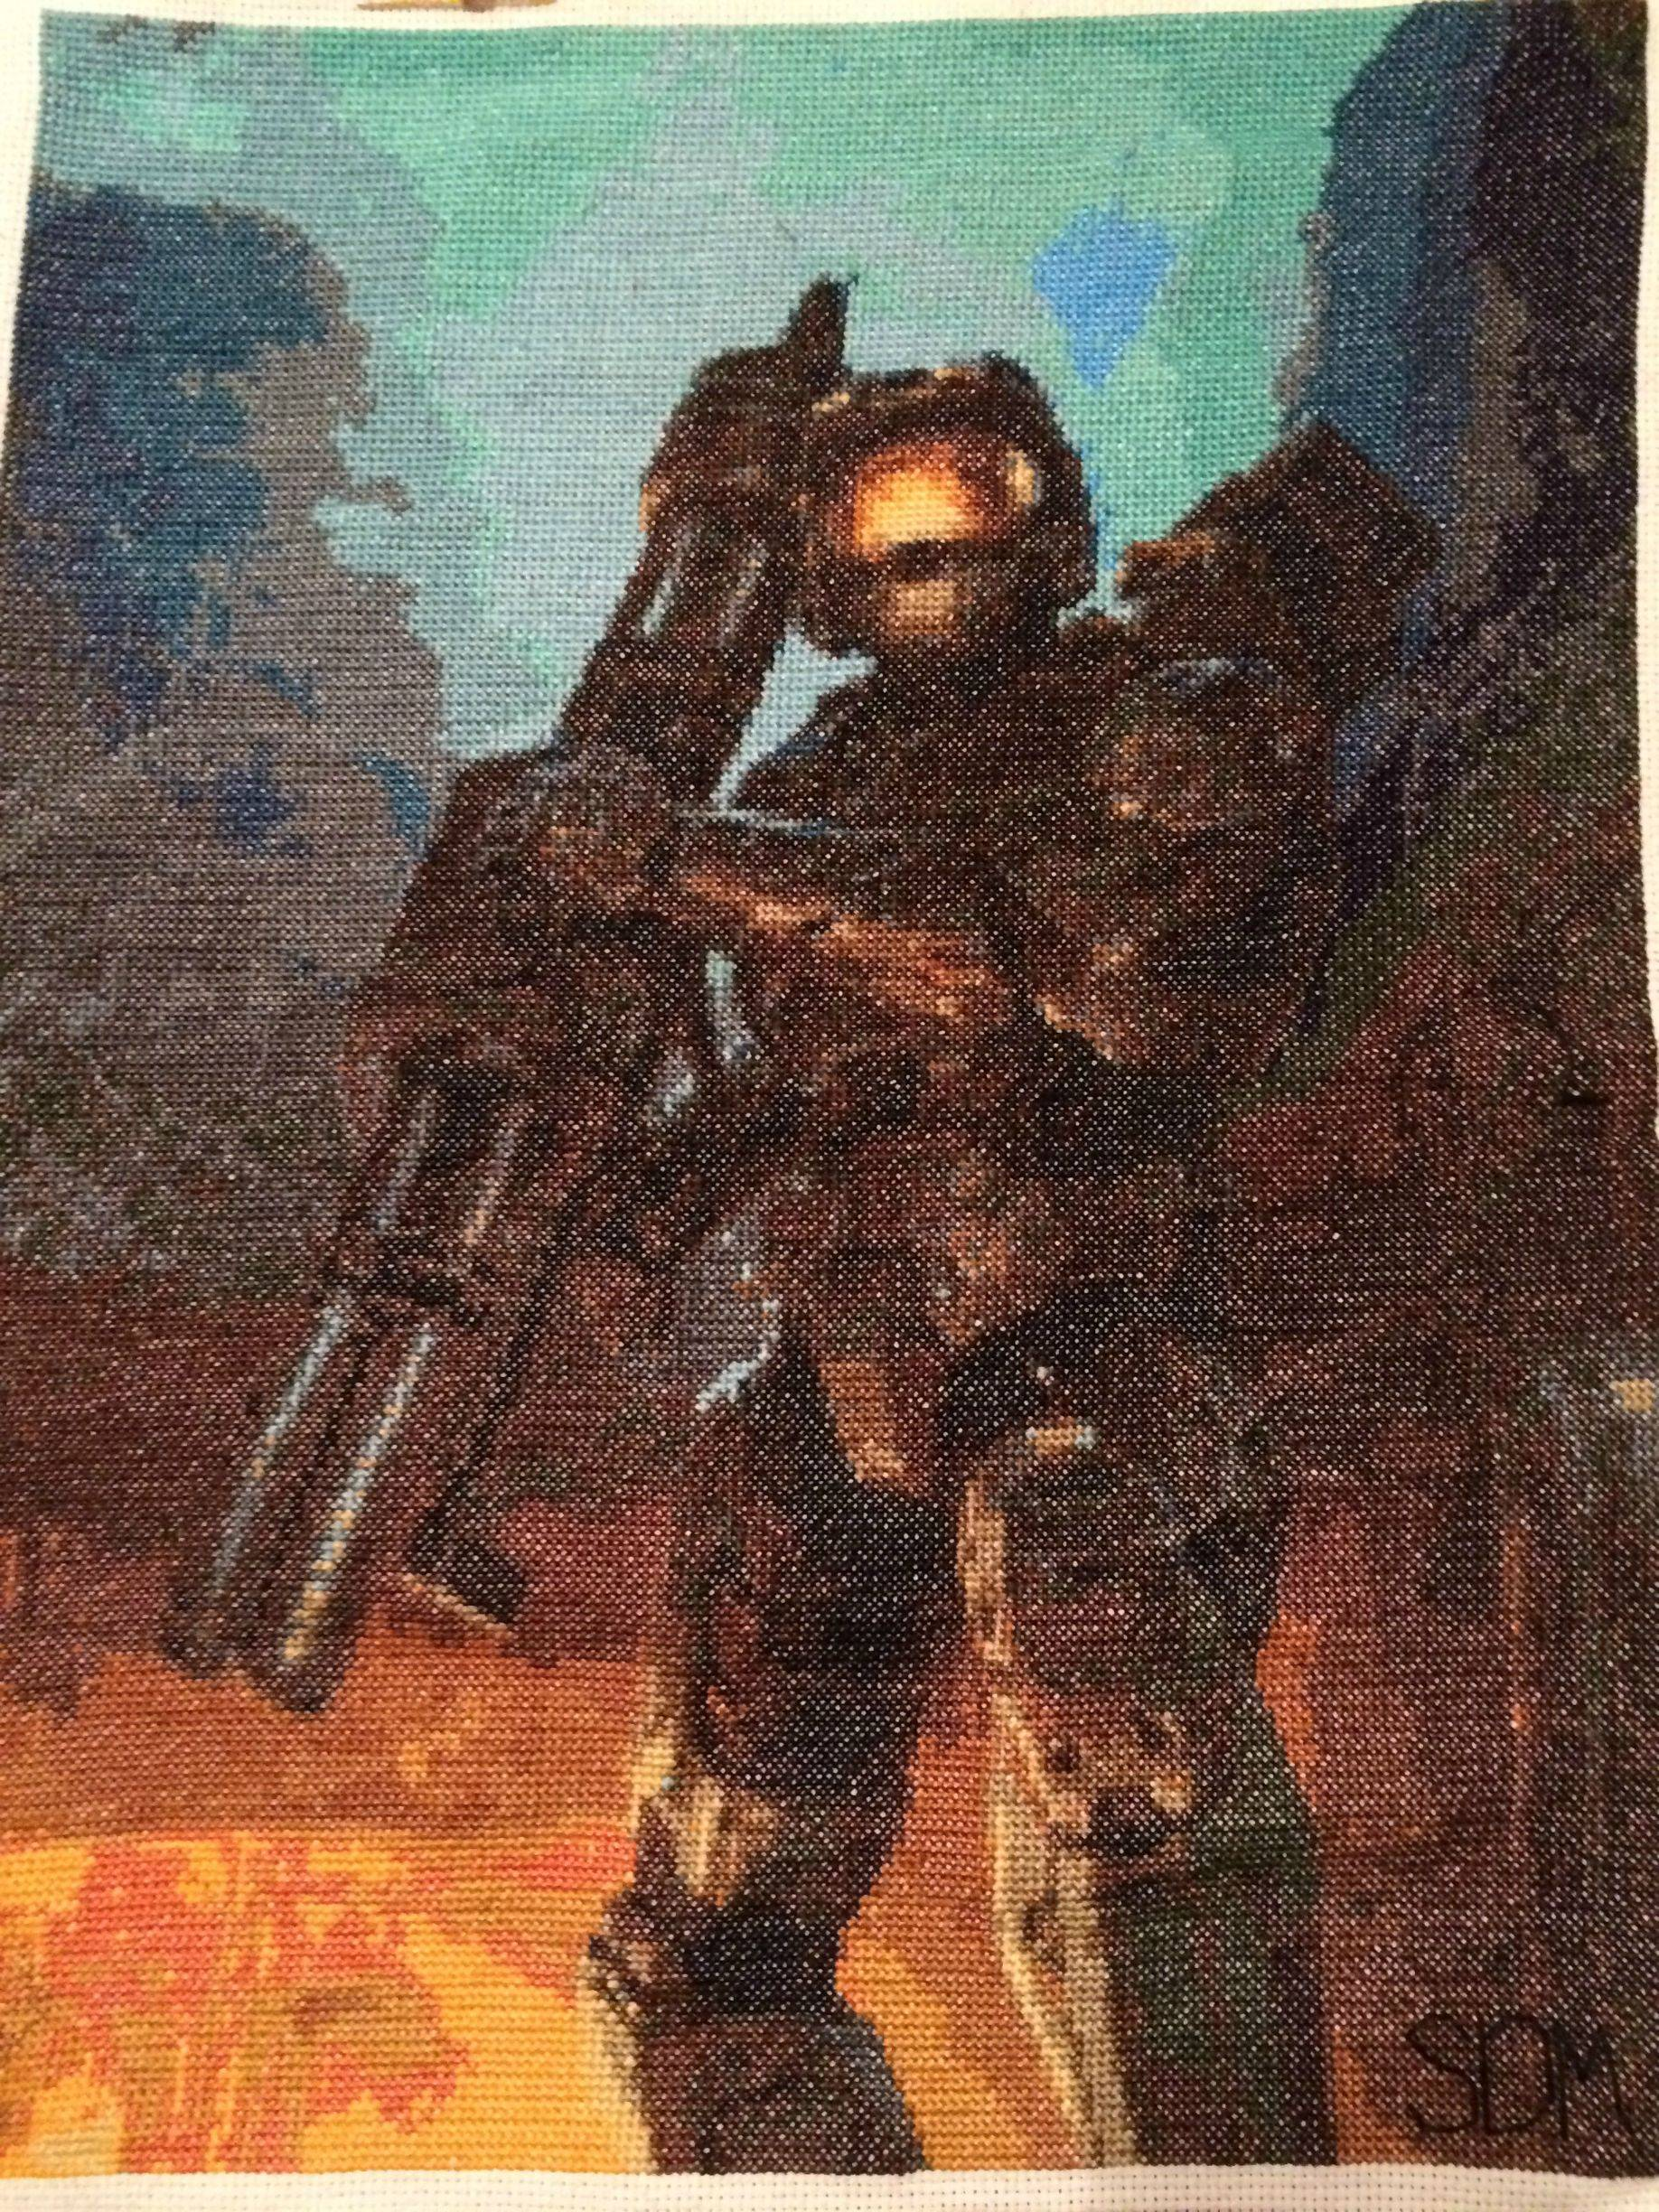 Master Chief Cross-Stitch